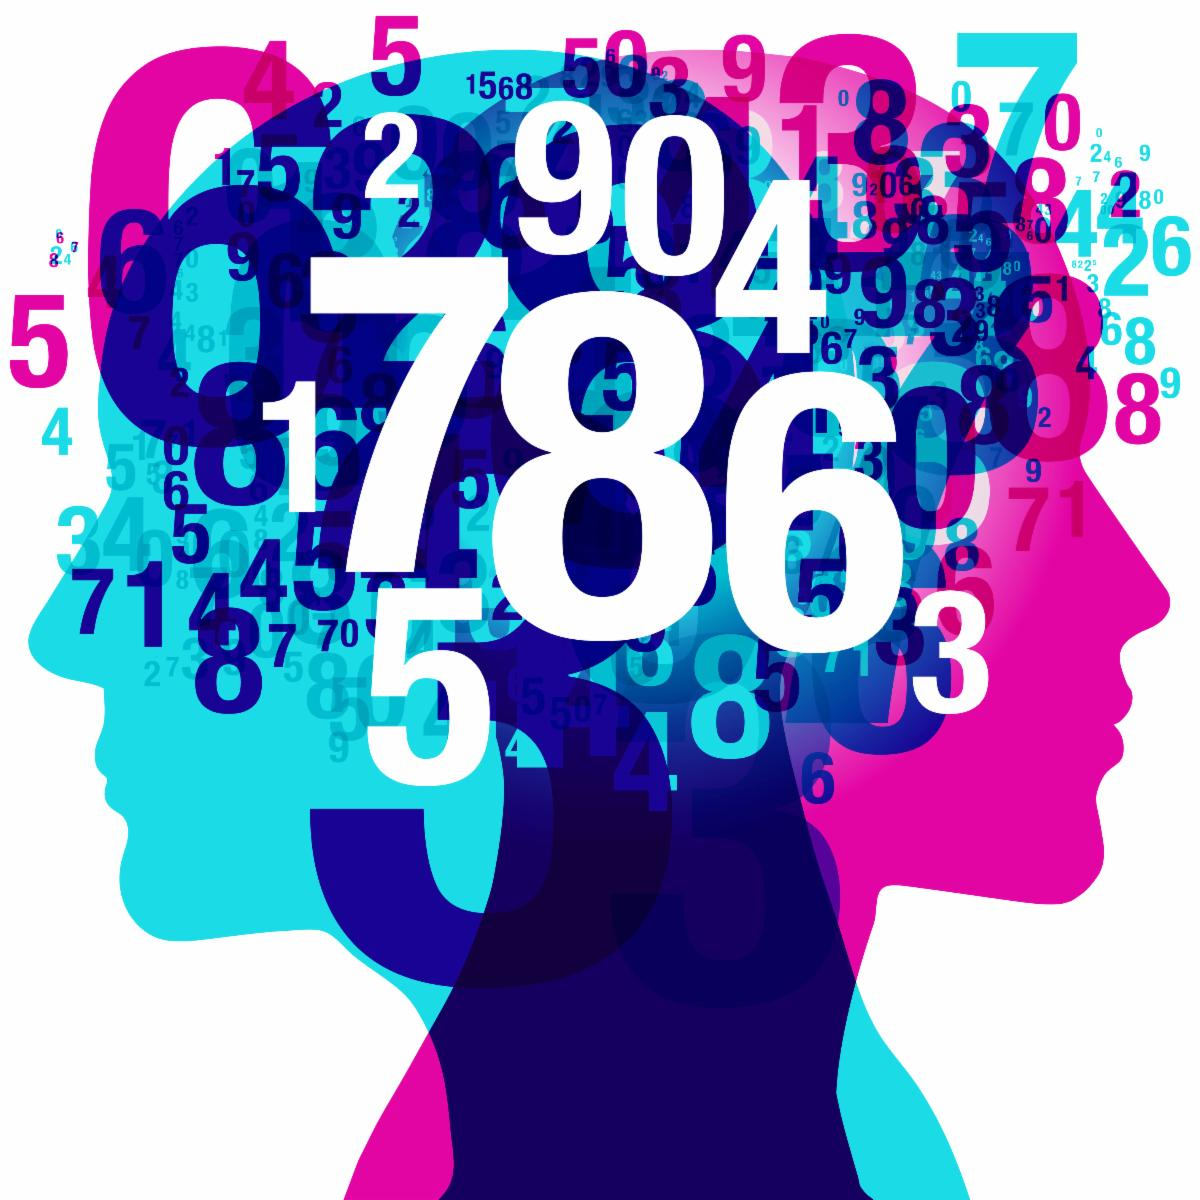 Drawing of a silhouette of heads with numbers falling out